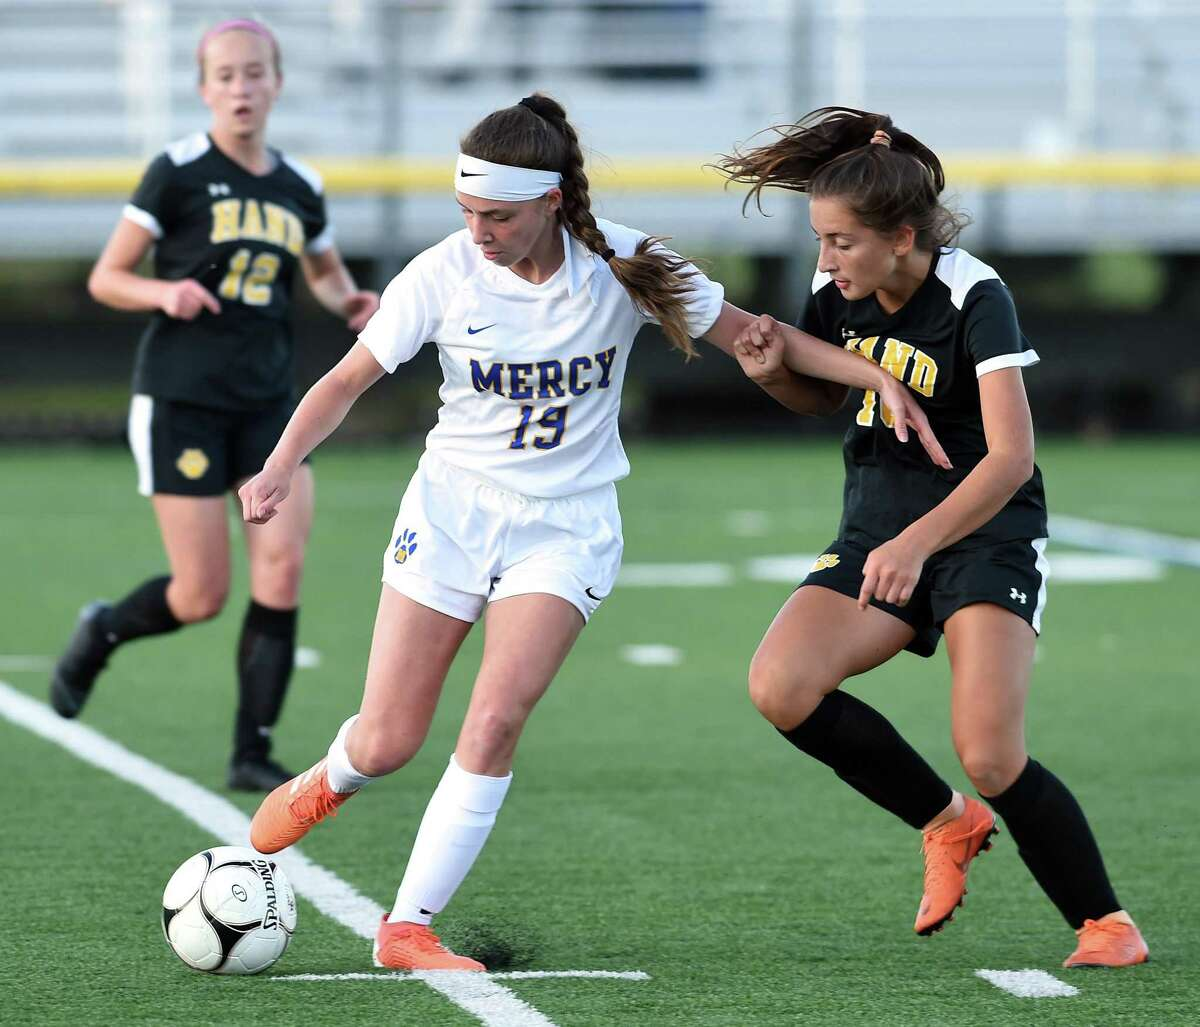 Kaila Lujambio (left) of Mercy and Lily Freid of Daniel Hand fight for the ball in the first half in Madison on September 17, 2019.